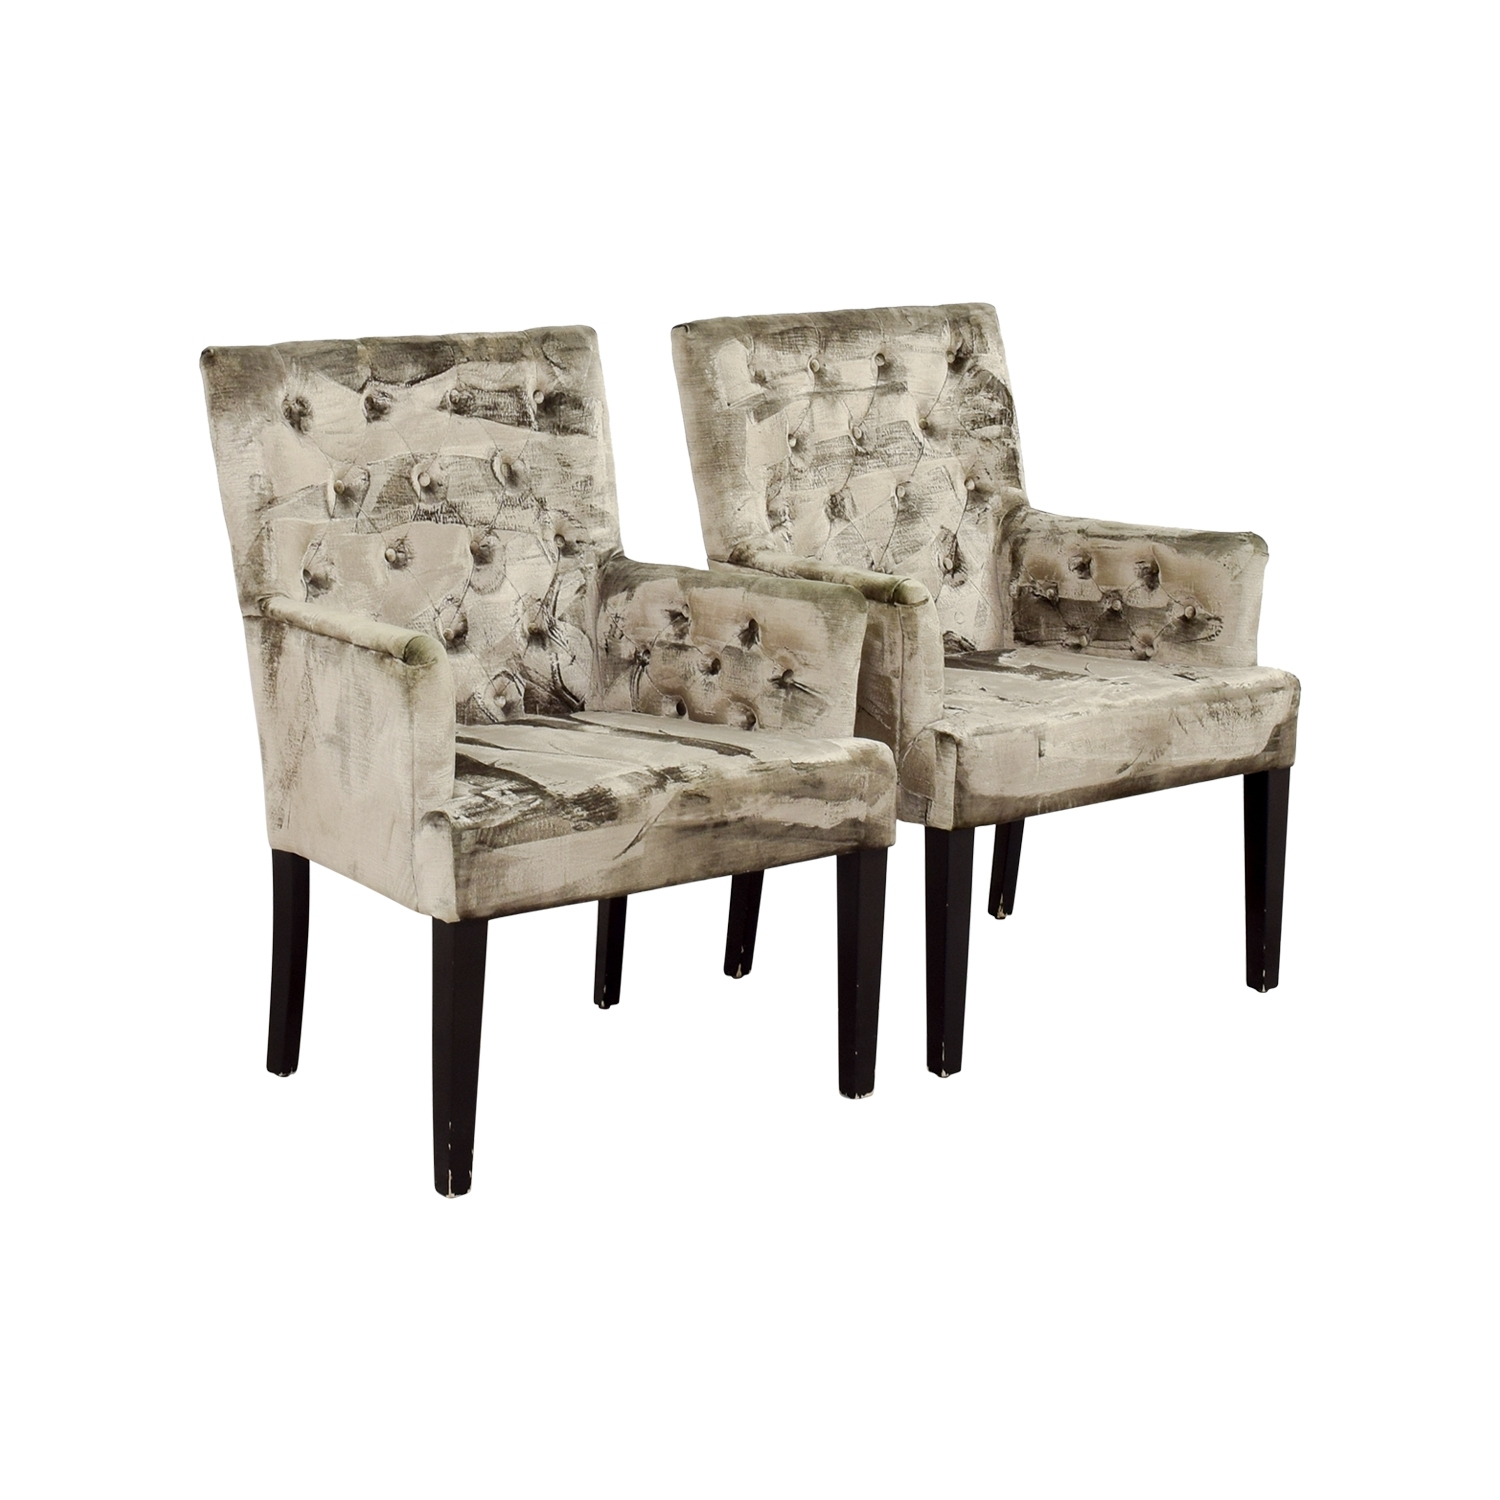 [%90% Off – Z Gallerie Z Gallerie Lola Bella Grey Tufted Arm Chairs In Favorite Lola Side Chairs|Lola Side Chairs Inside Well Liked 90% Off – Z Gallerie Z Gallerie Lola Bella Grey Tufted Arm Chairs|Fashionable Lola Side Chairs In 90% Off – Z Gallerie Z Gallerie Lola Bella Grey Tufted Arm Chairs|Well Known 90% Off – Z Gallerie Z Gallerie Lola Bella Grey Tufted Arm Chairs Pertaining To Lola Side Chairs%] (#20 of 20)